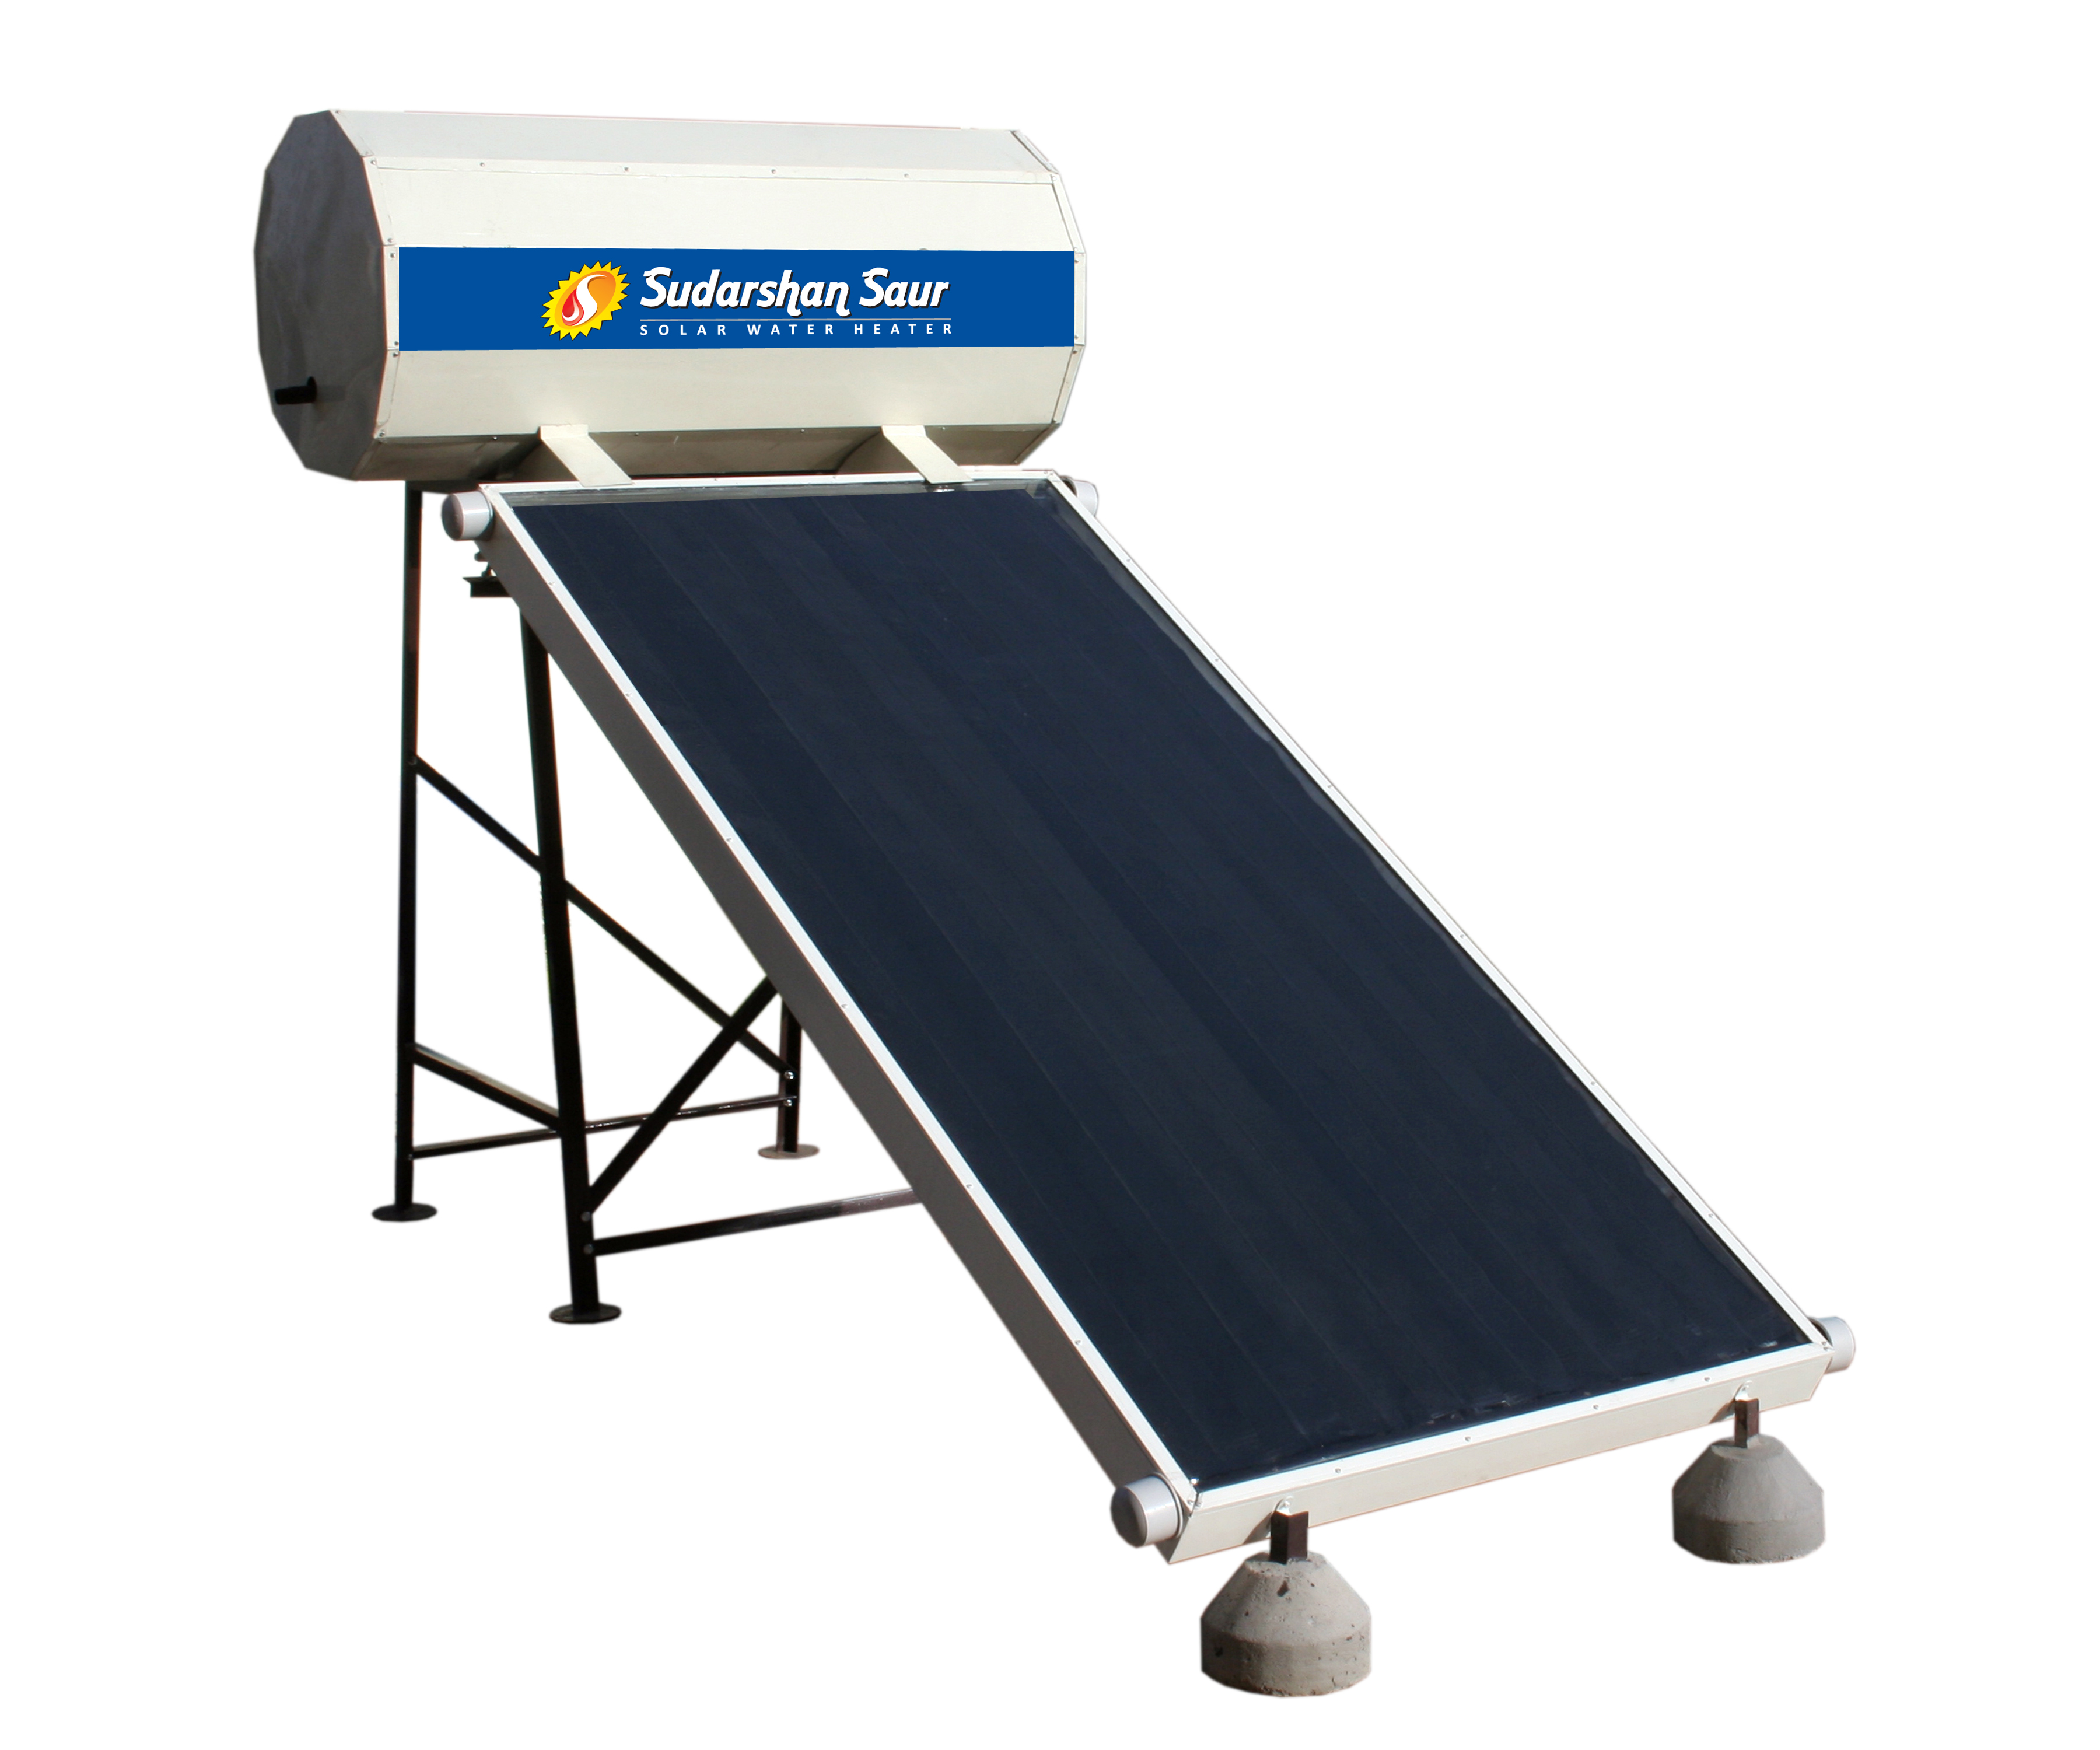 Review of current literature on solar water heating